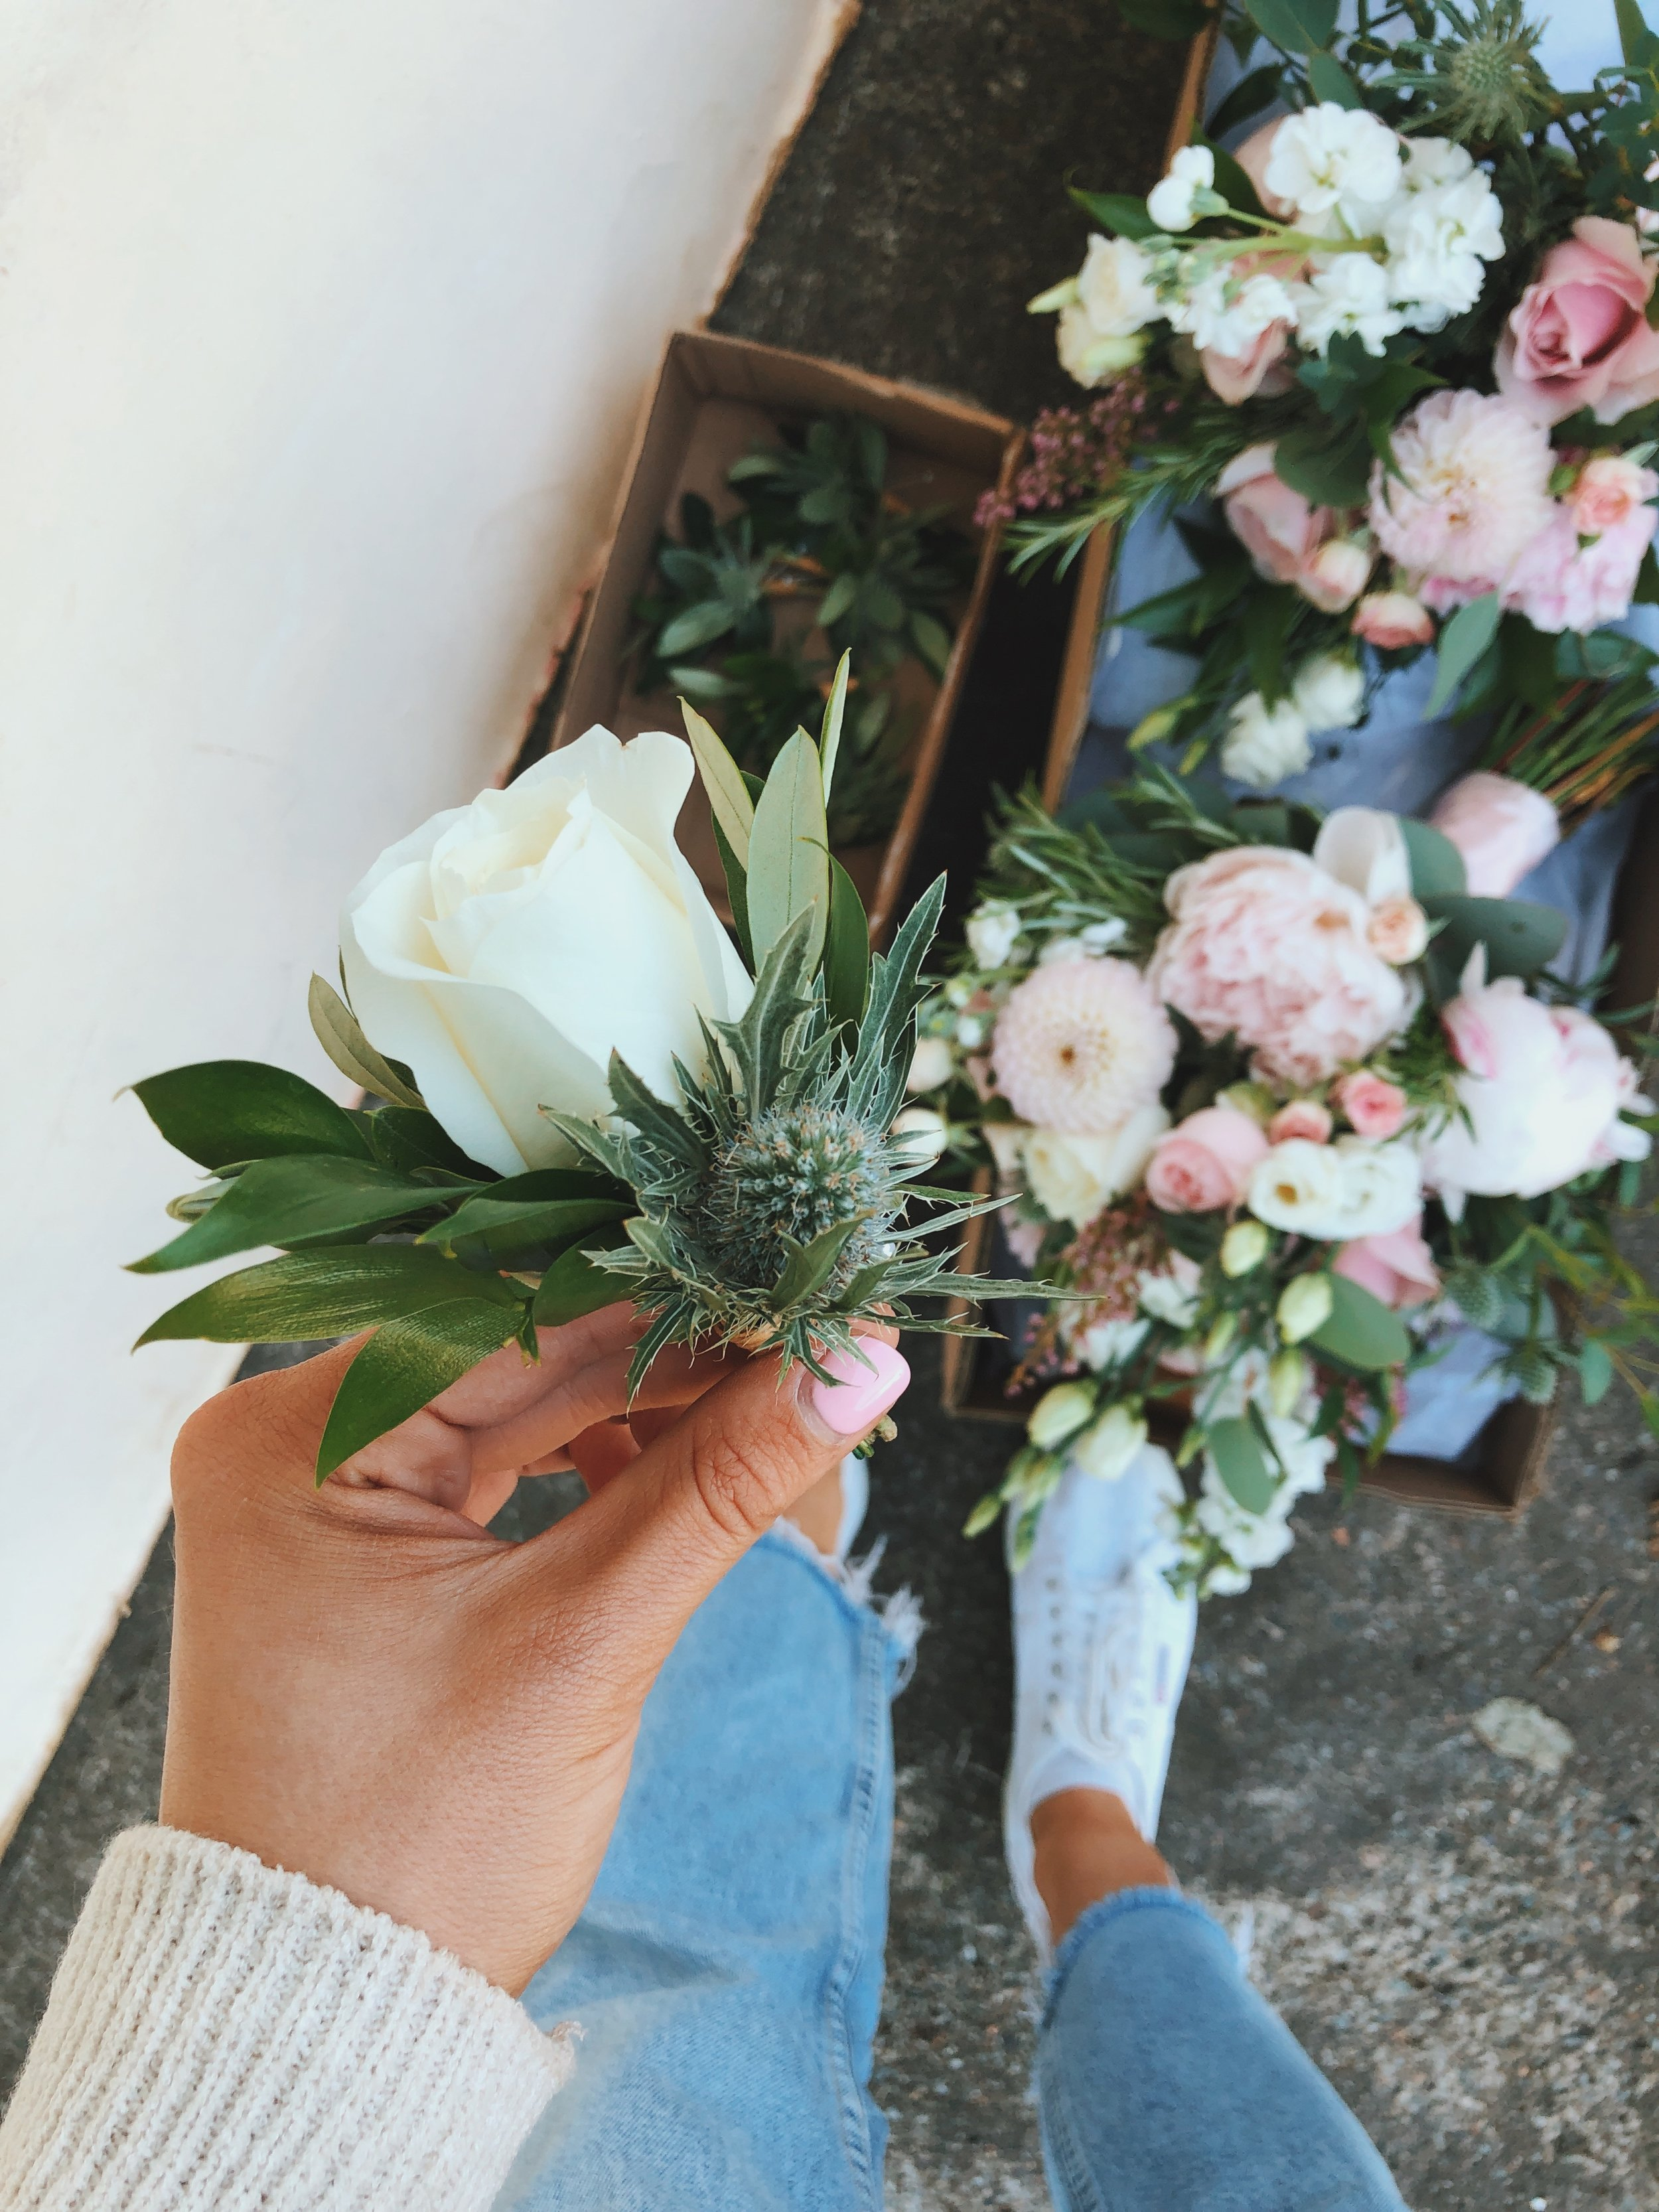 Buttonhole pin on corsage 2.JPG